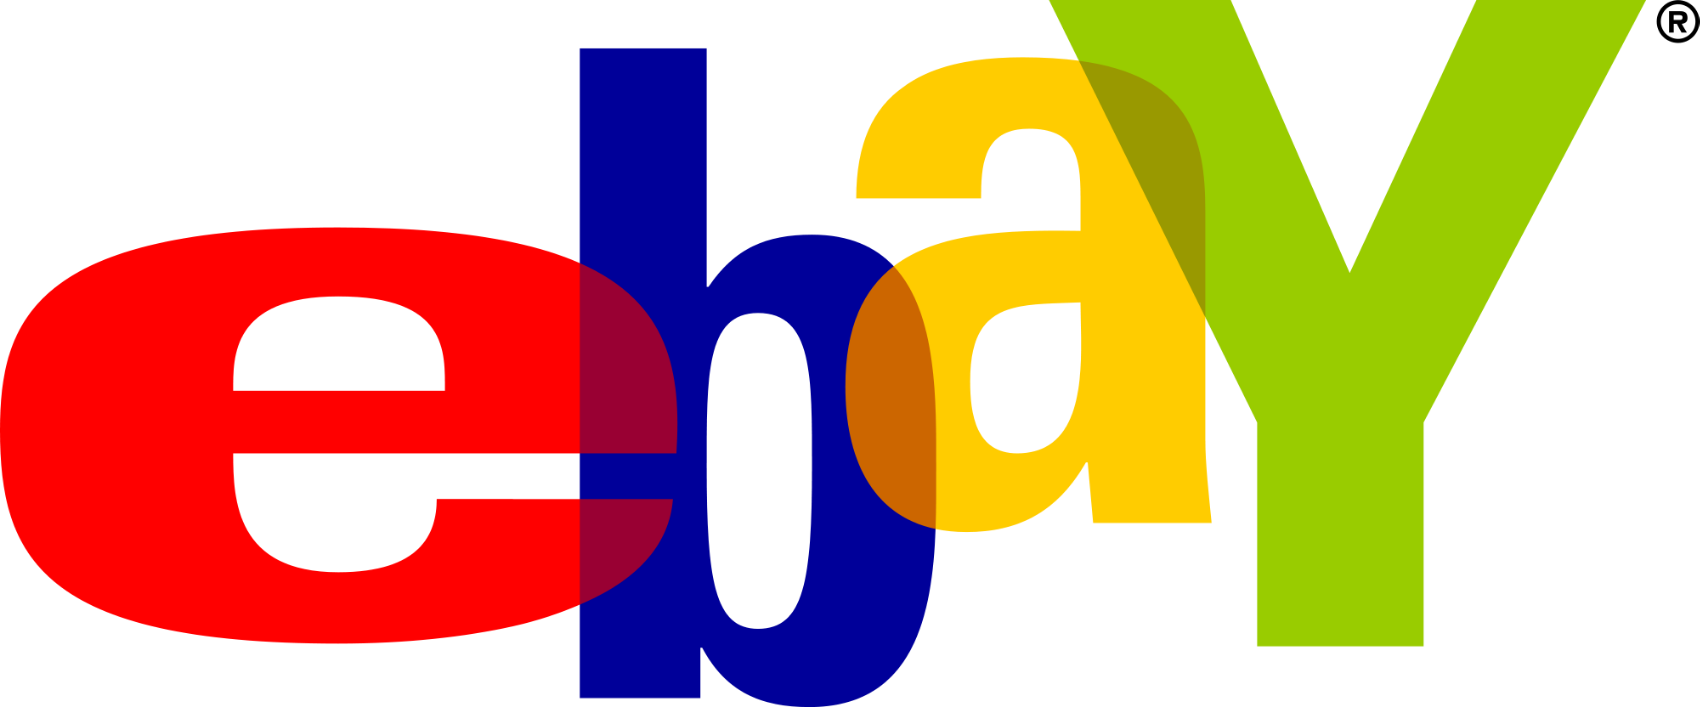 an overview of ebay inc Find the companies and other organizations seeking to influence us politics and policy via campaign donations and lobbying spending, and see which members of congress hold stock in those companies.